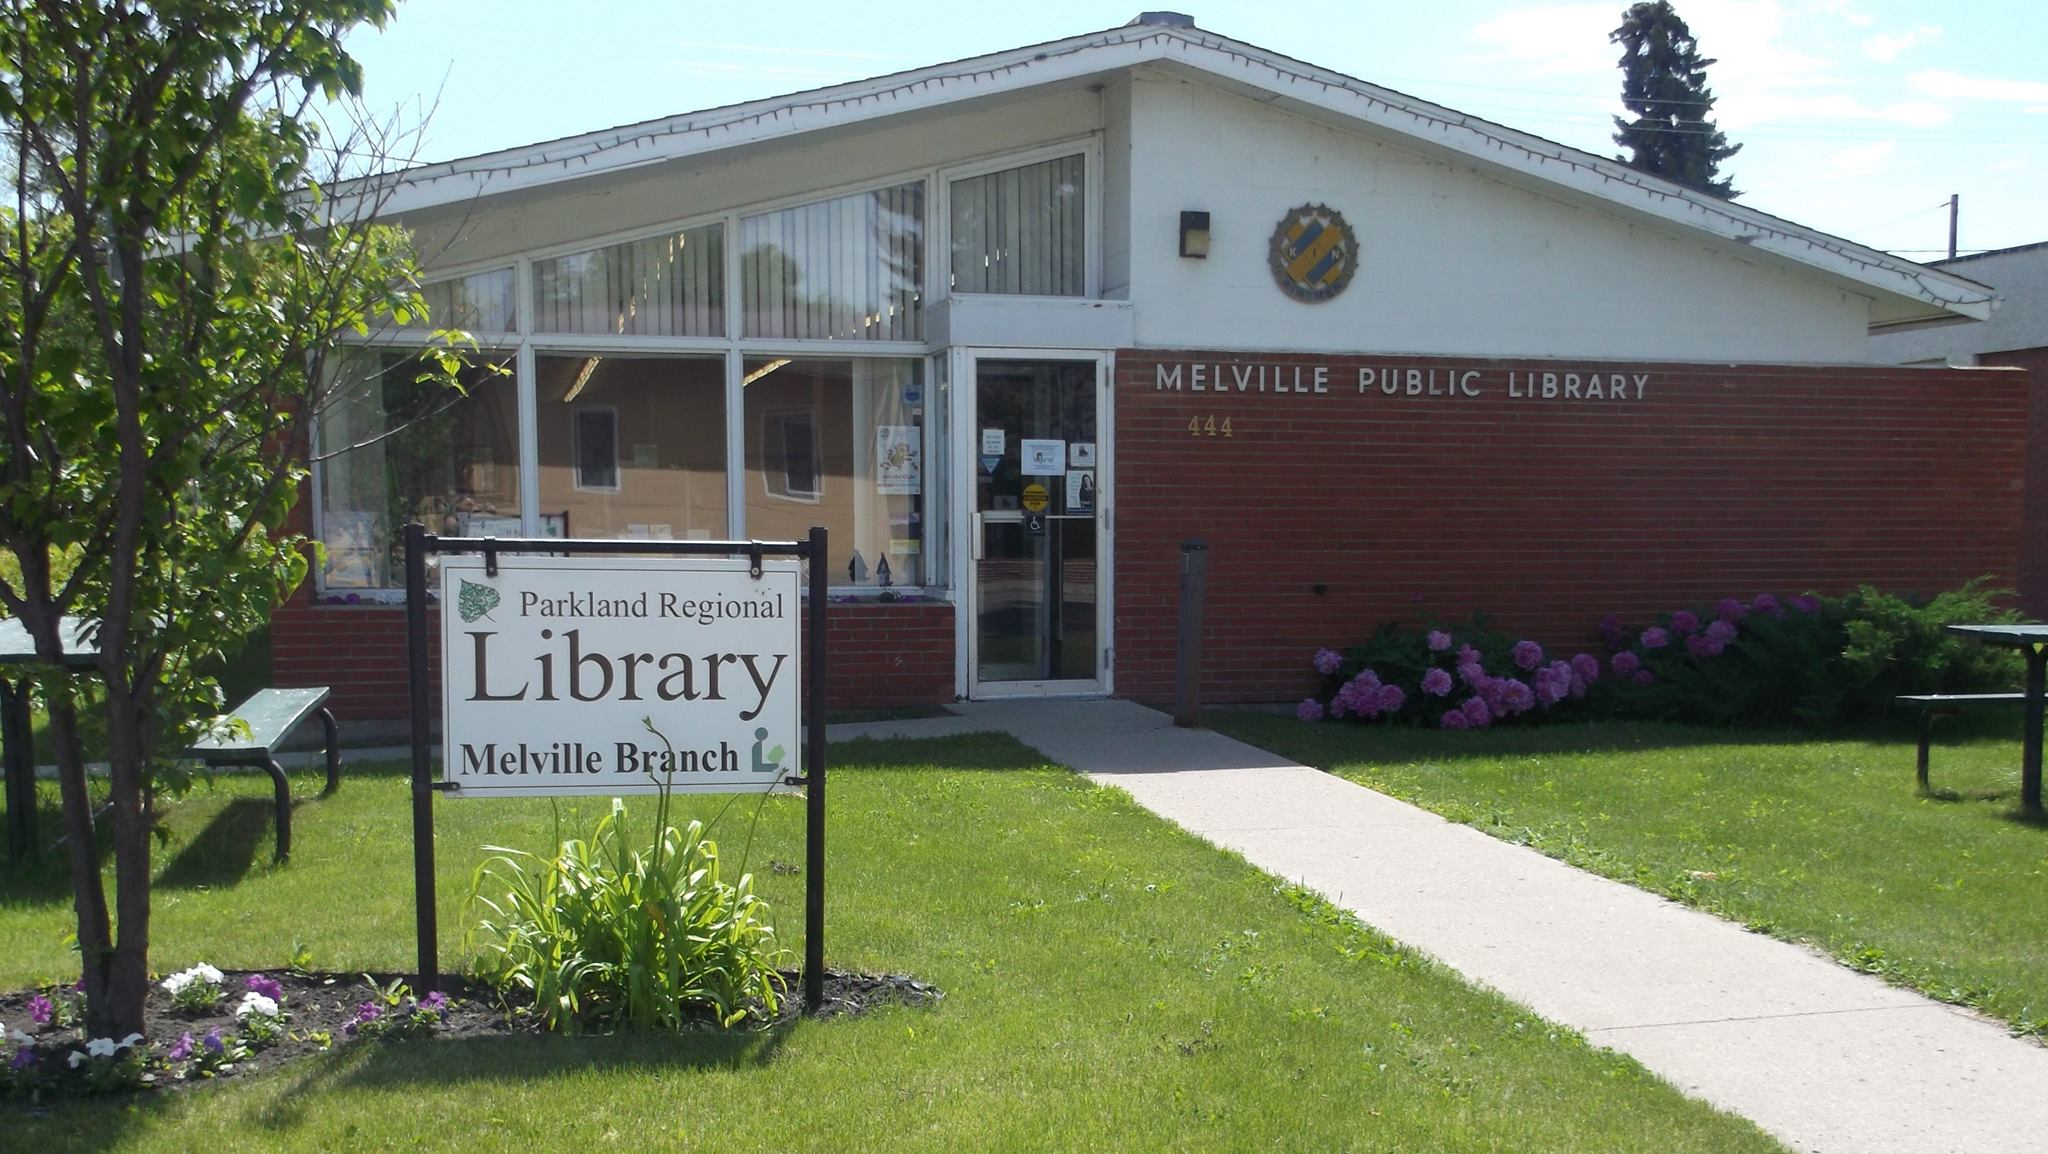 Melville Public Library